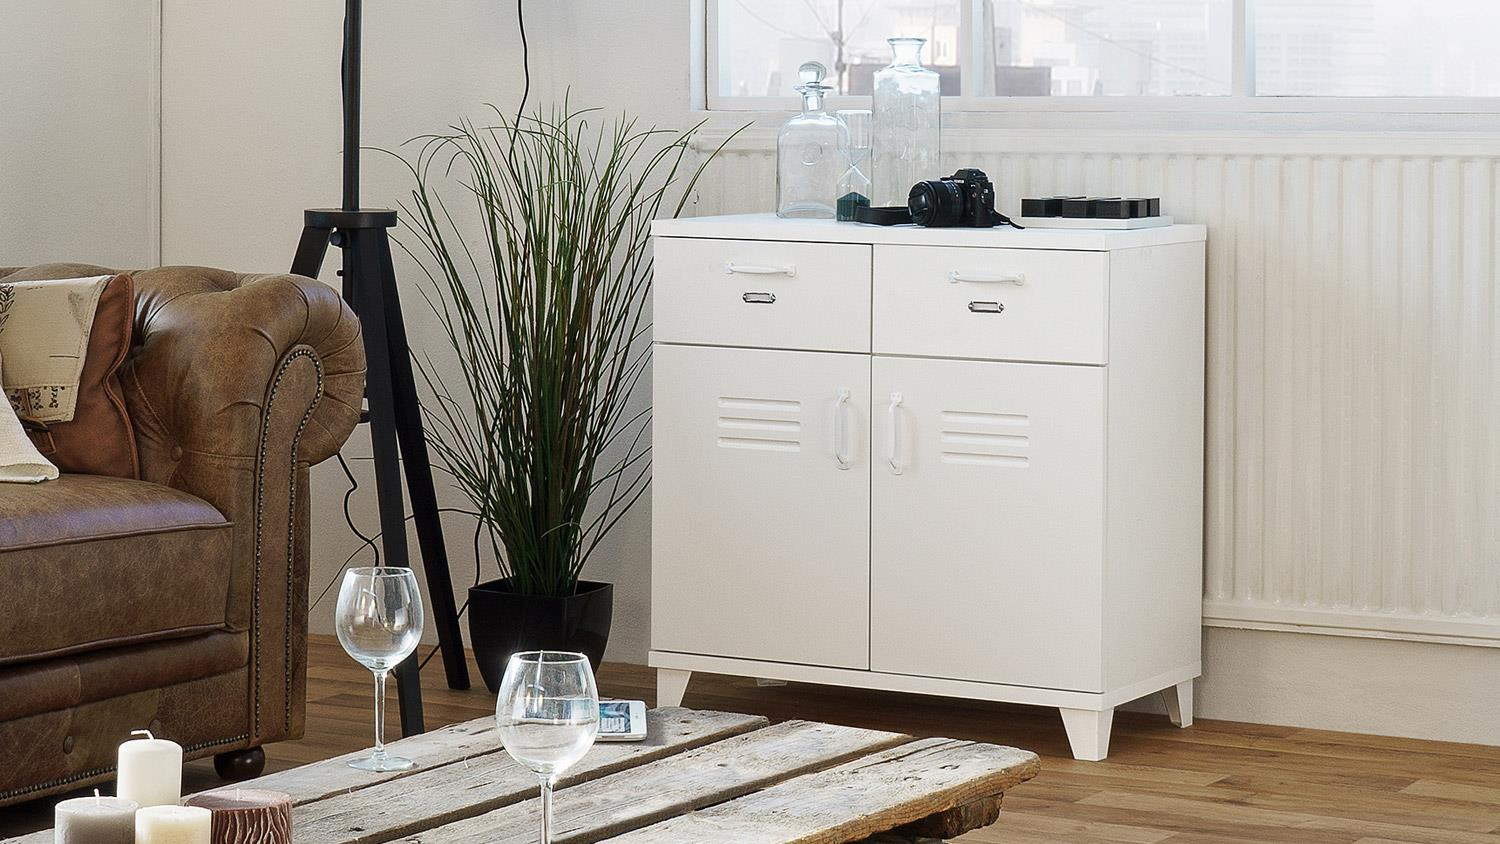 Kommode Factory 3 Spind Sideboard 2 Turig Weiss 80x80 Cm Industrie Look